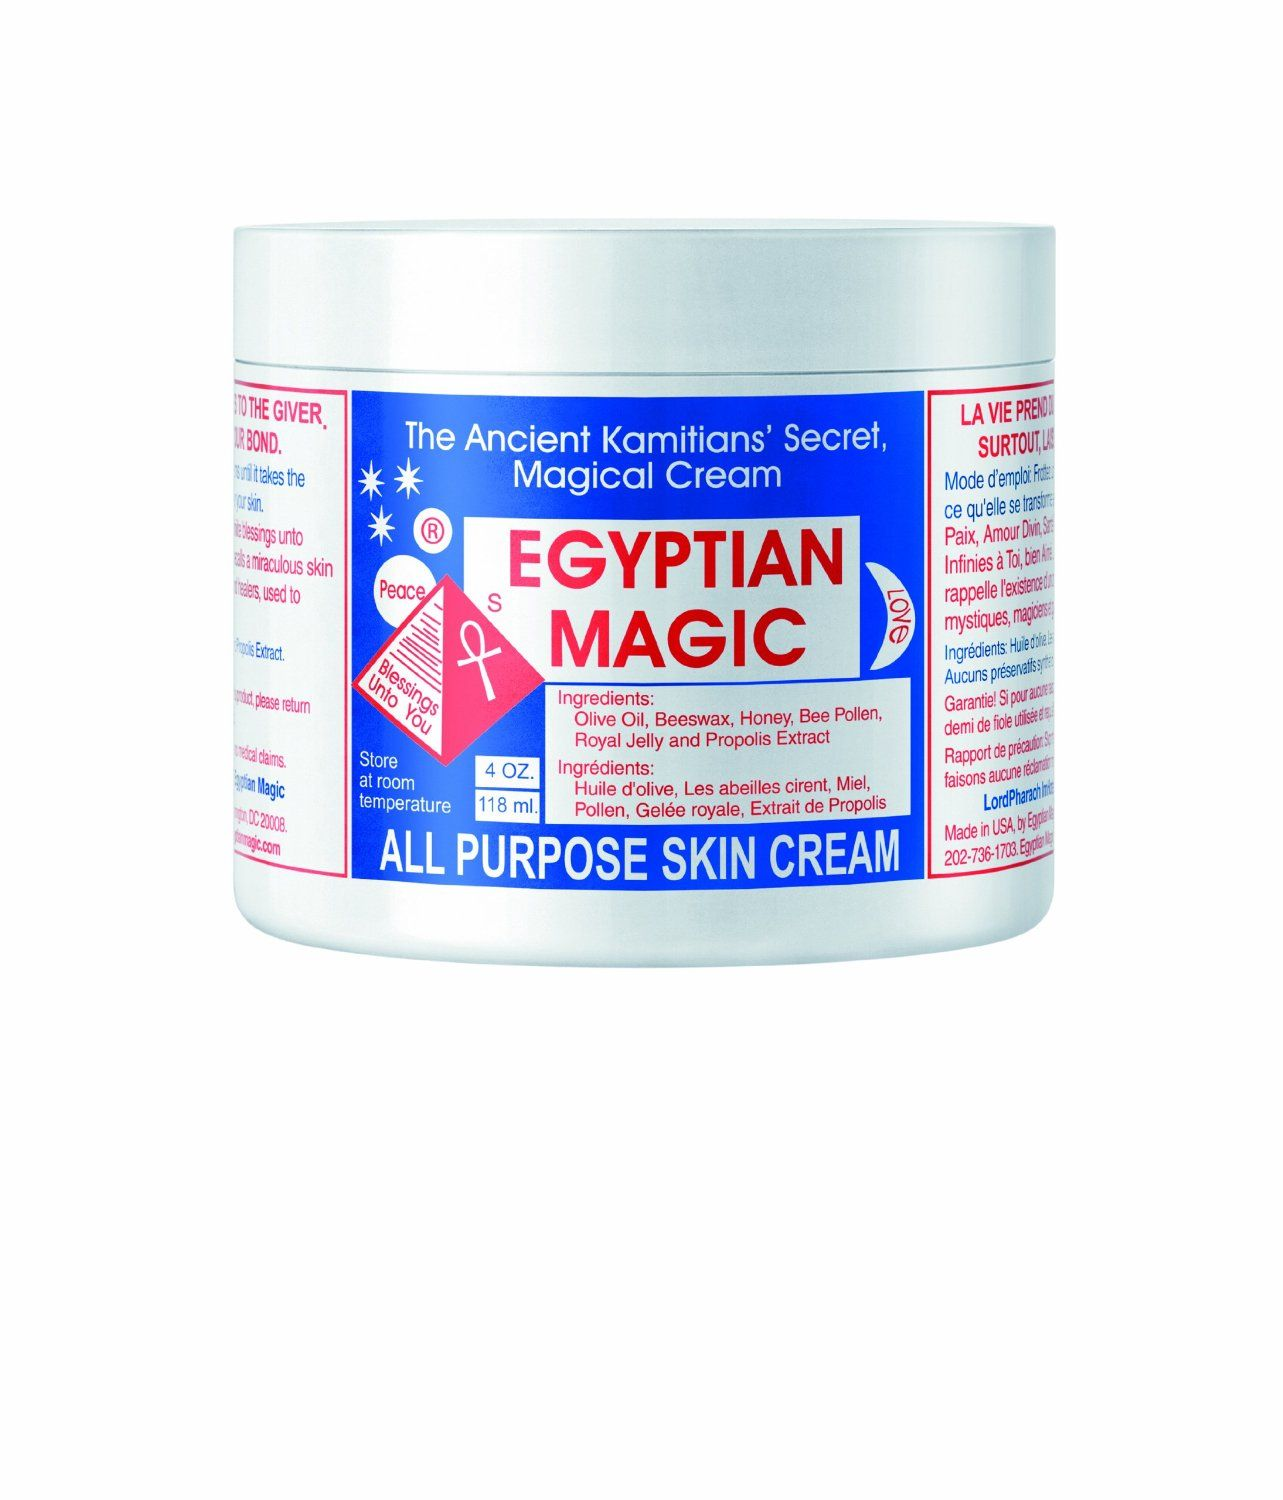 D health food store in l a - Egyptian Magic All Purpose Skin Cream Stretch Marks Nails Hair Skin Rash More An All Around Magical Cream Available At Health Food Stores